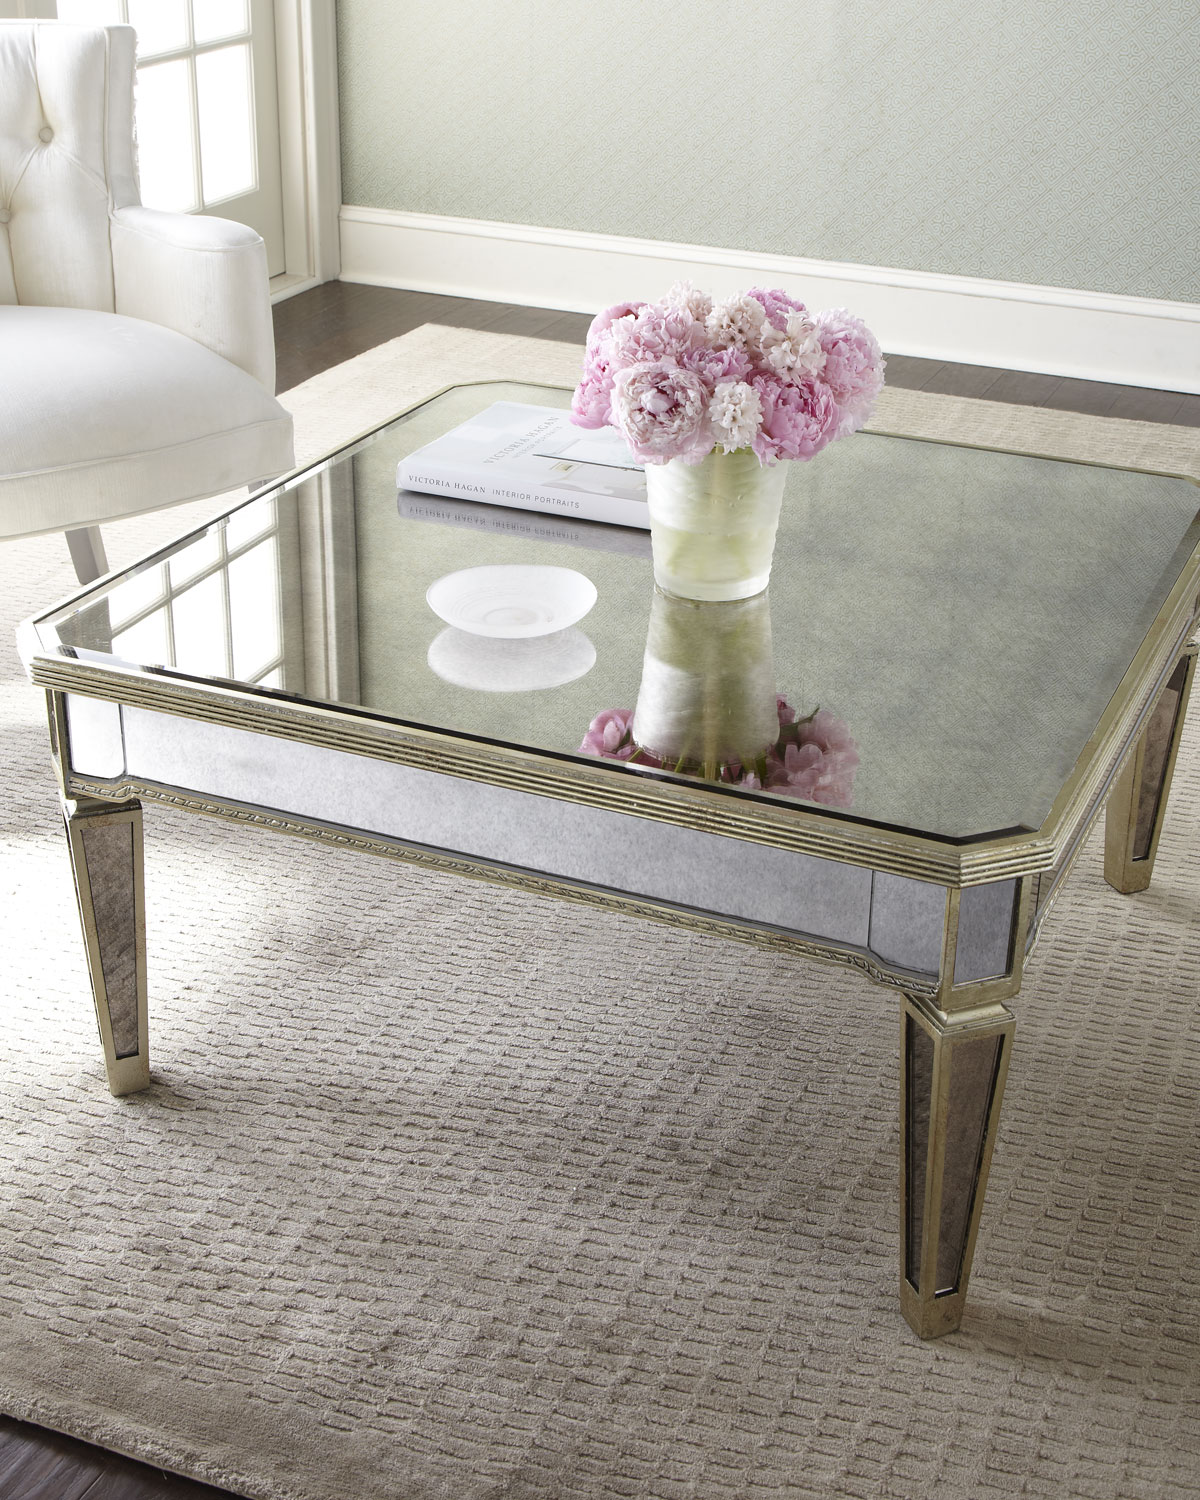 furniture pier one accent tables coffee table side imports dining console circular skinny sid oval with shelf ethan allen ballan folding bistro painted hiend accents barn door